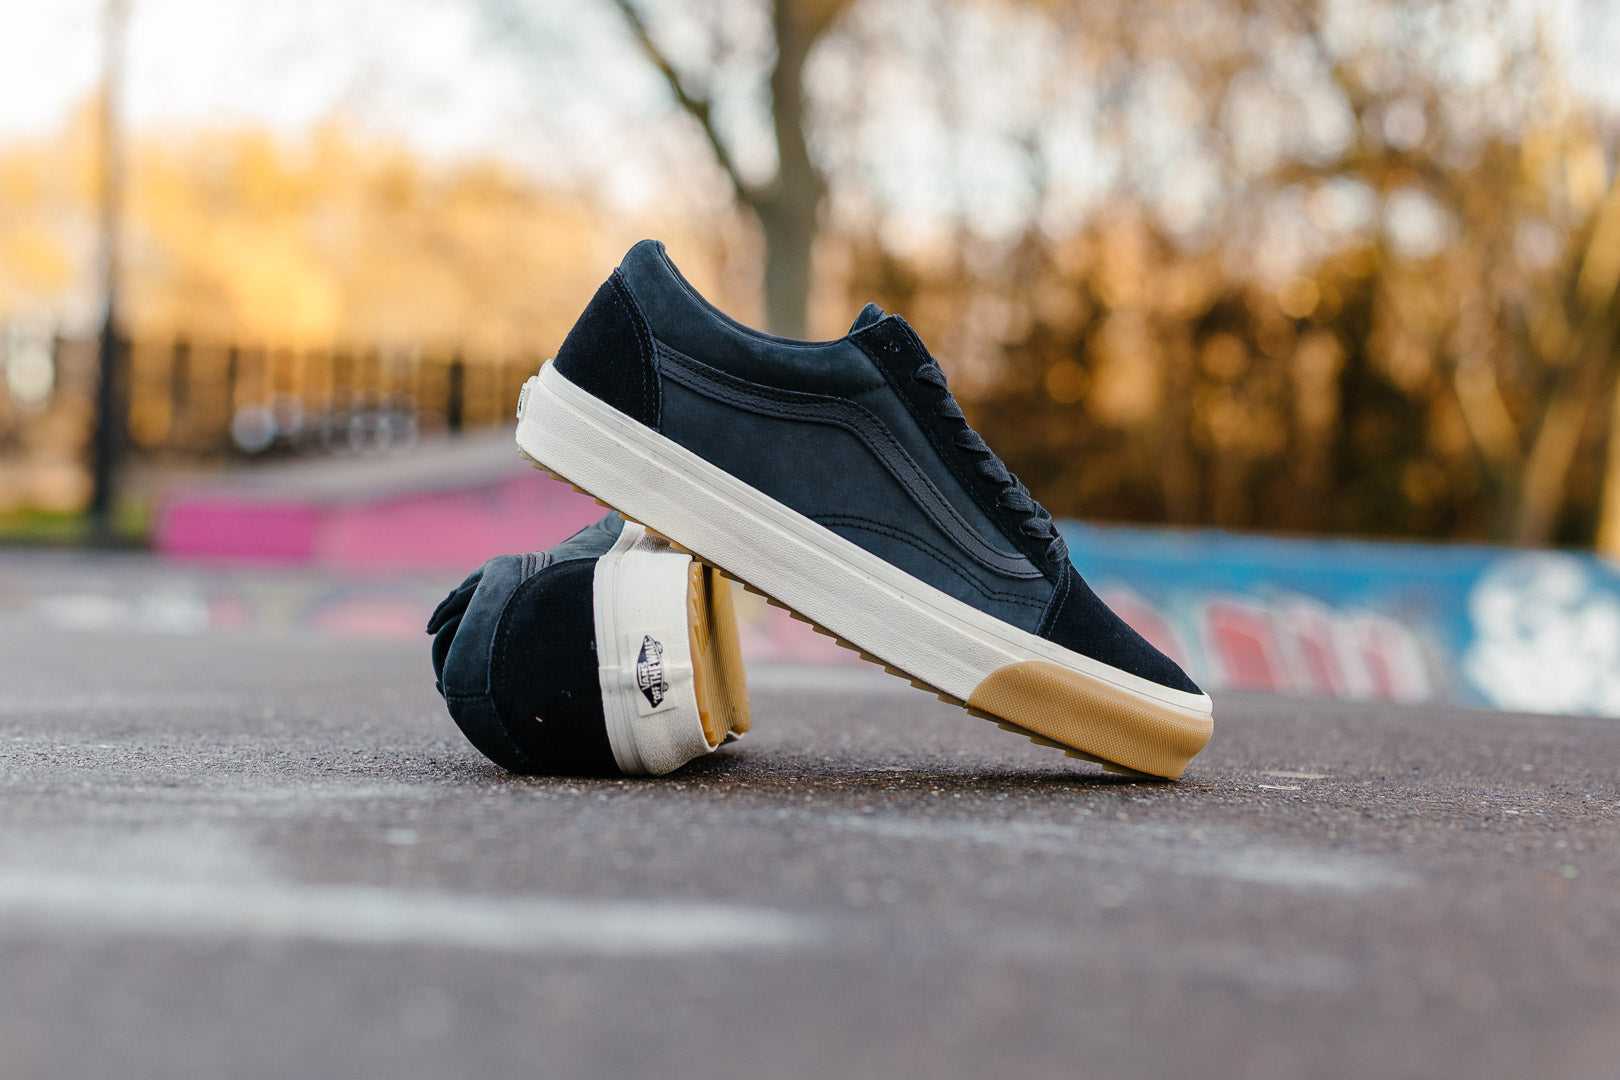 SHOP OUR BRAND NEW VANS COLLECTION NOW